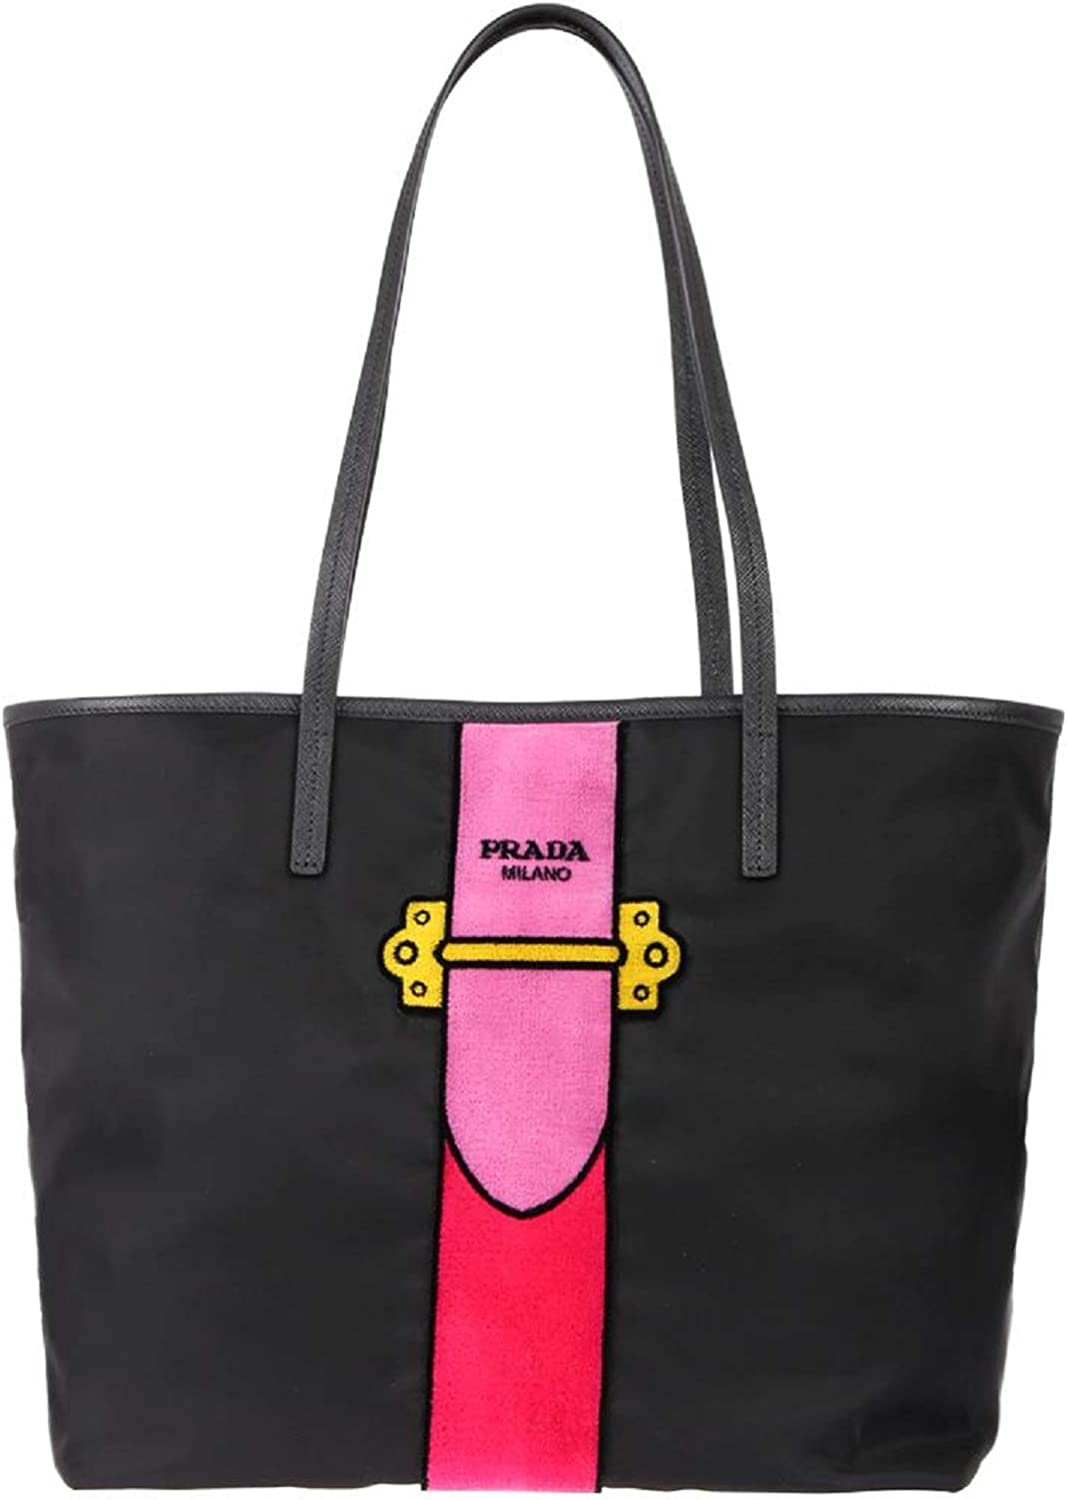 Prada Womens Black Tessuto Ricamo Shopping Tote Shoulder Bag Messenger Bag with Pink Velvet Accent Line Leather Trim 1BG065